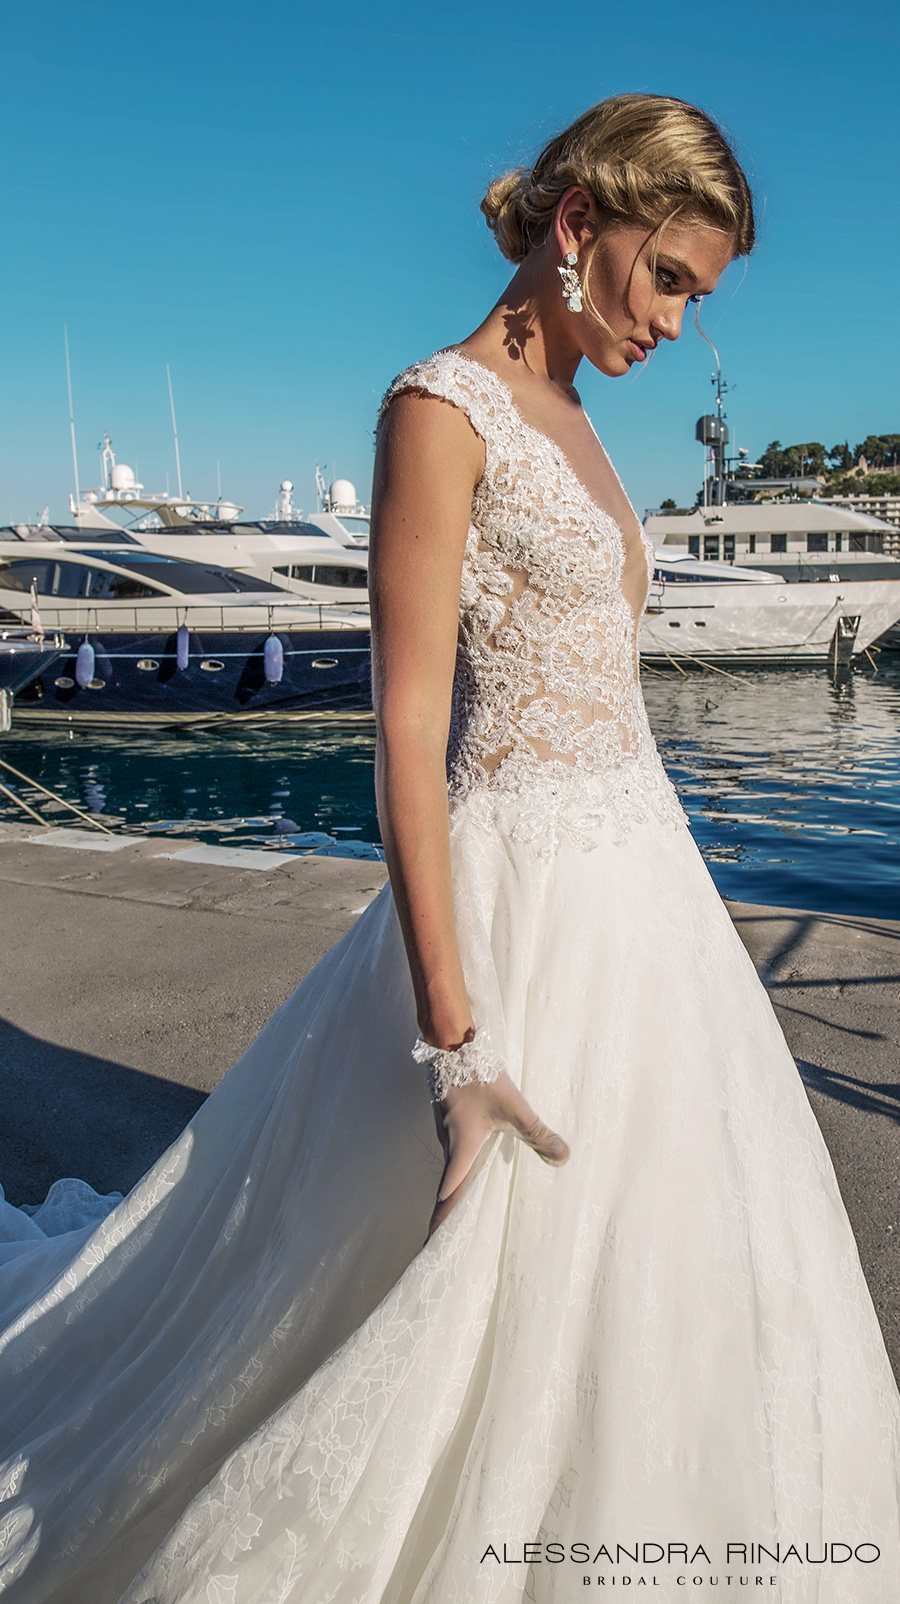 alessandra rinaudo 2017 bridal cap sleeves illusion bateau deep plunging v neck lace heavily embellished bodice romantic princess a line wedding dress v back royal chapel train (blair) zsdv